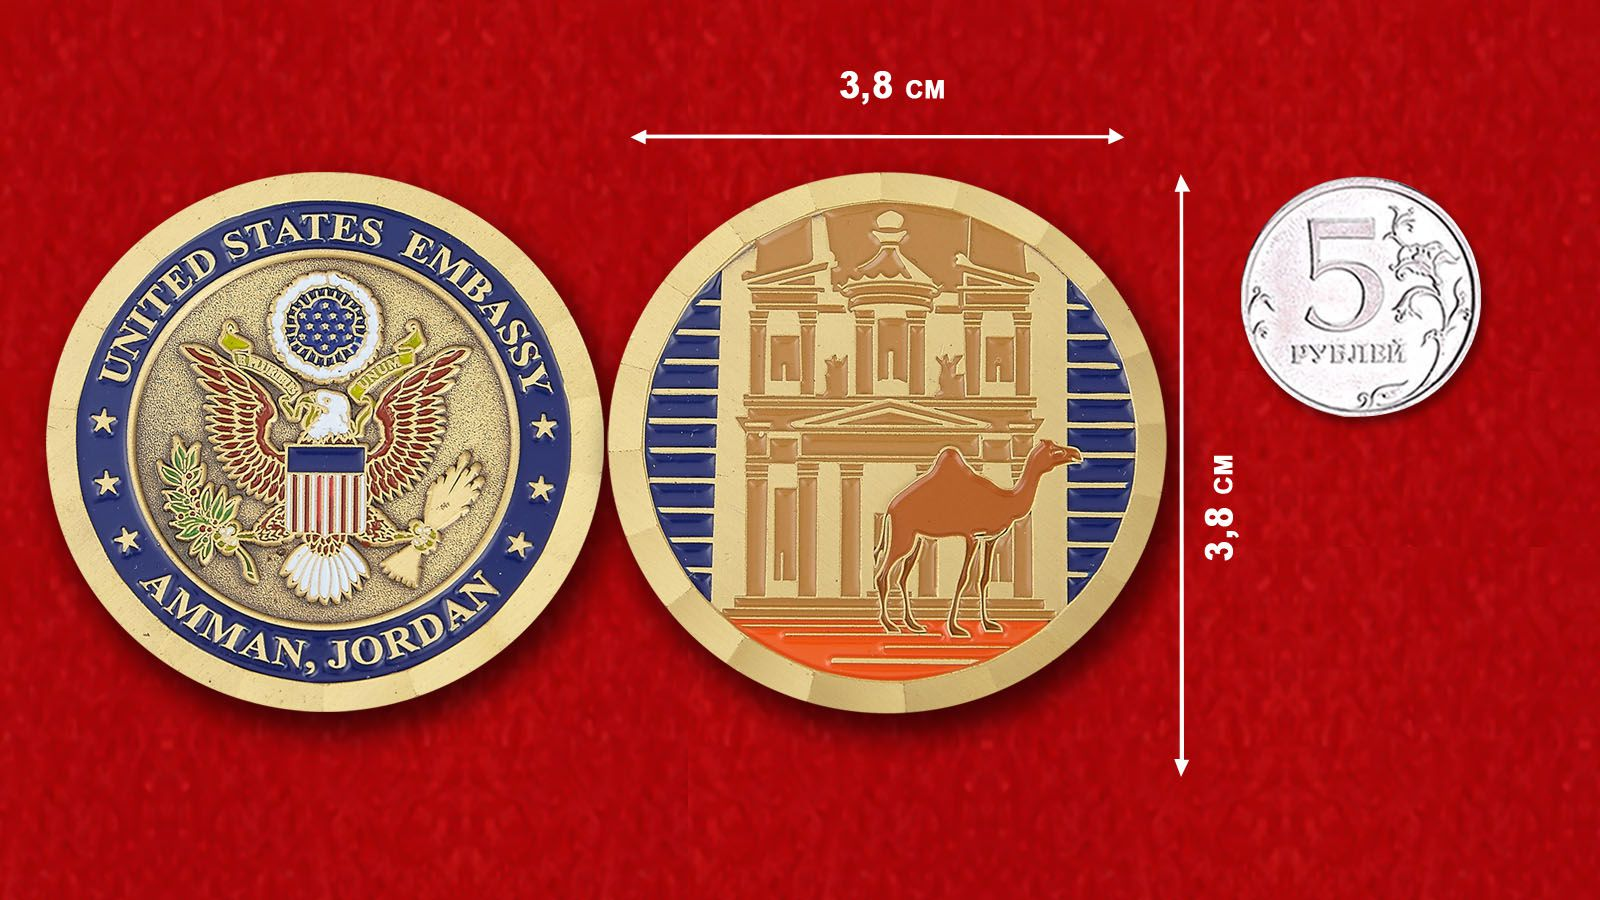 The US Embassy in Amman Challenge Coin - comparative size